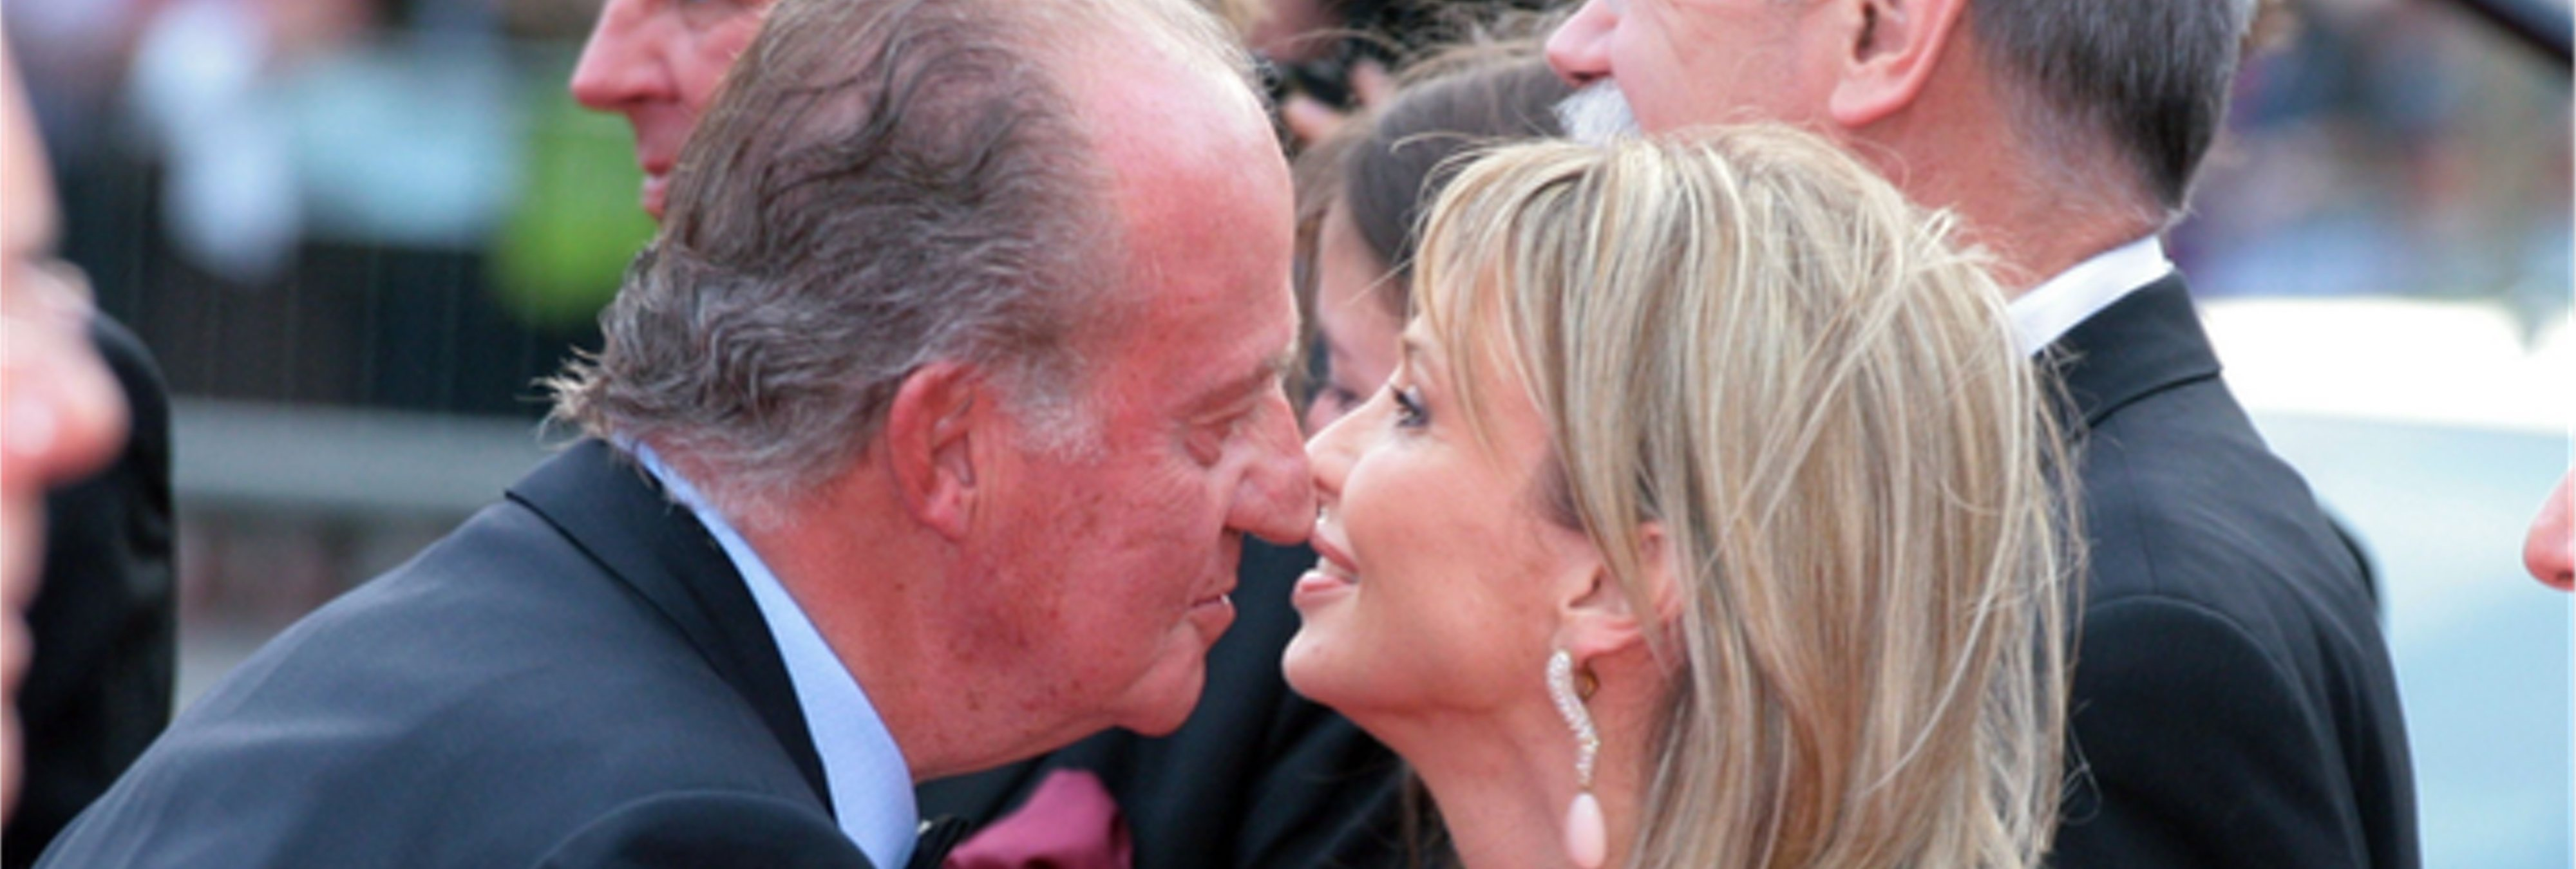 Don Juan Carlos, en jaque: Anticorrupcion interrogará a Corinna por sus turbios negocios